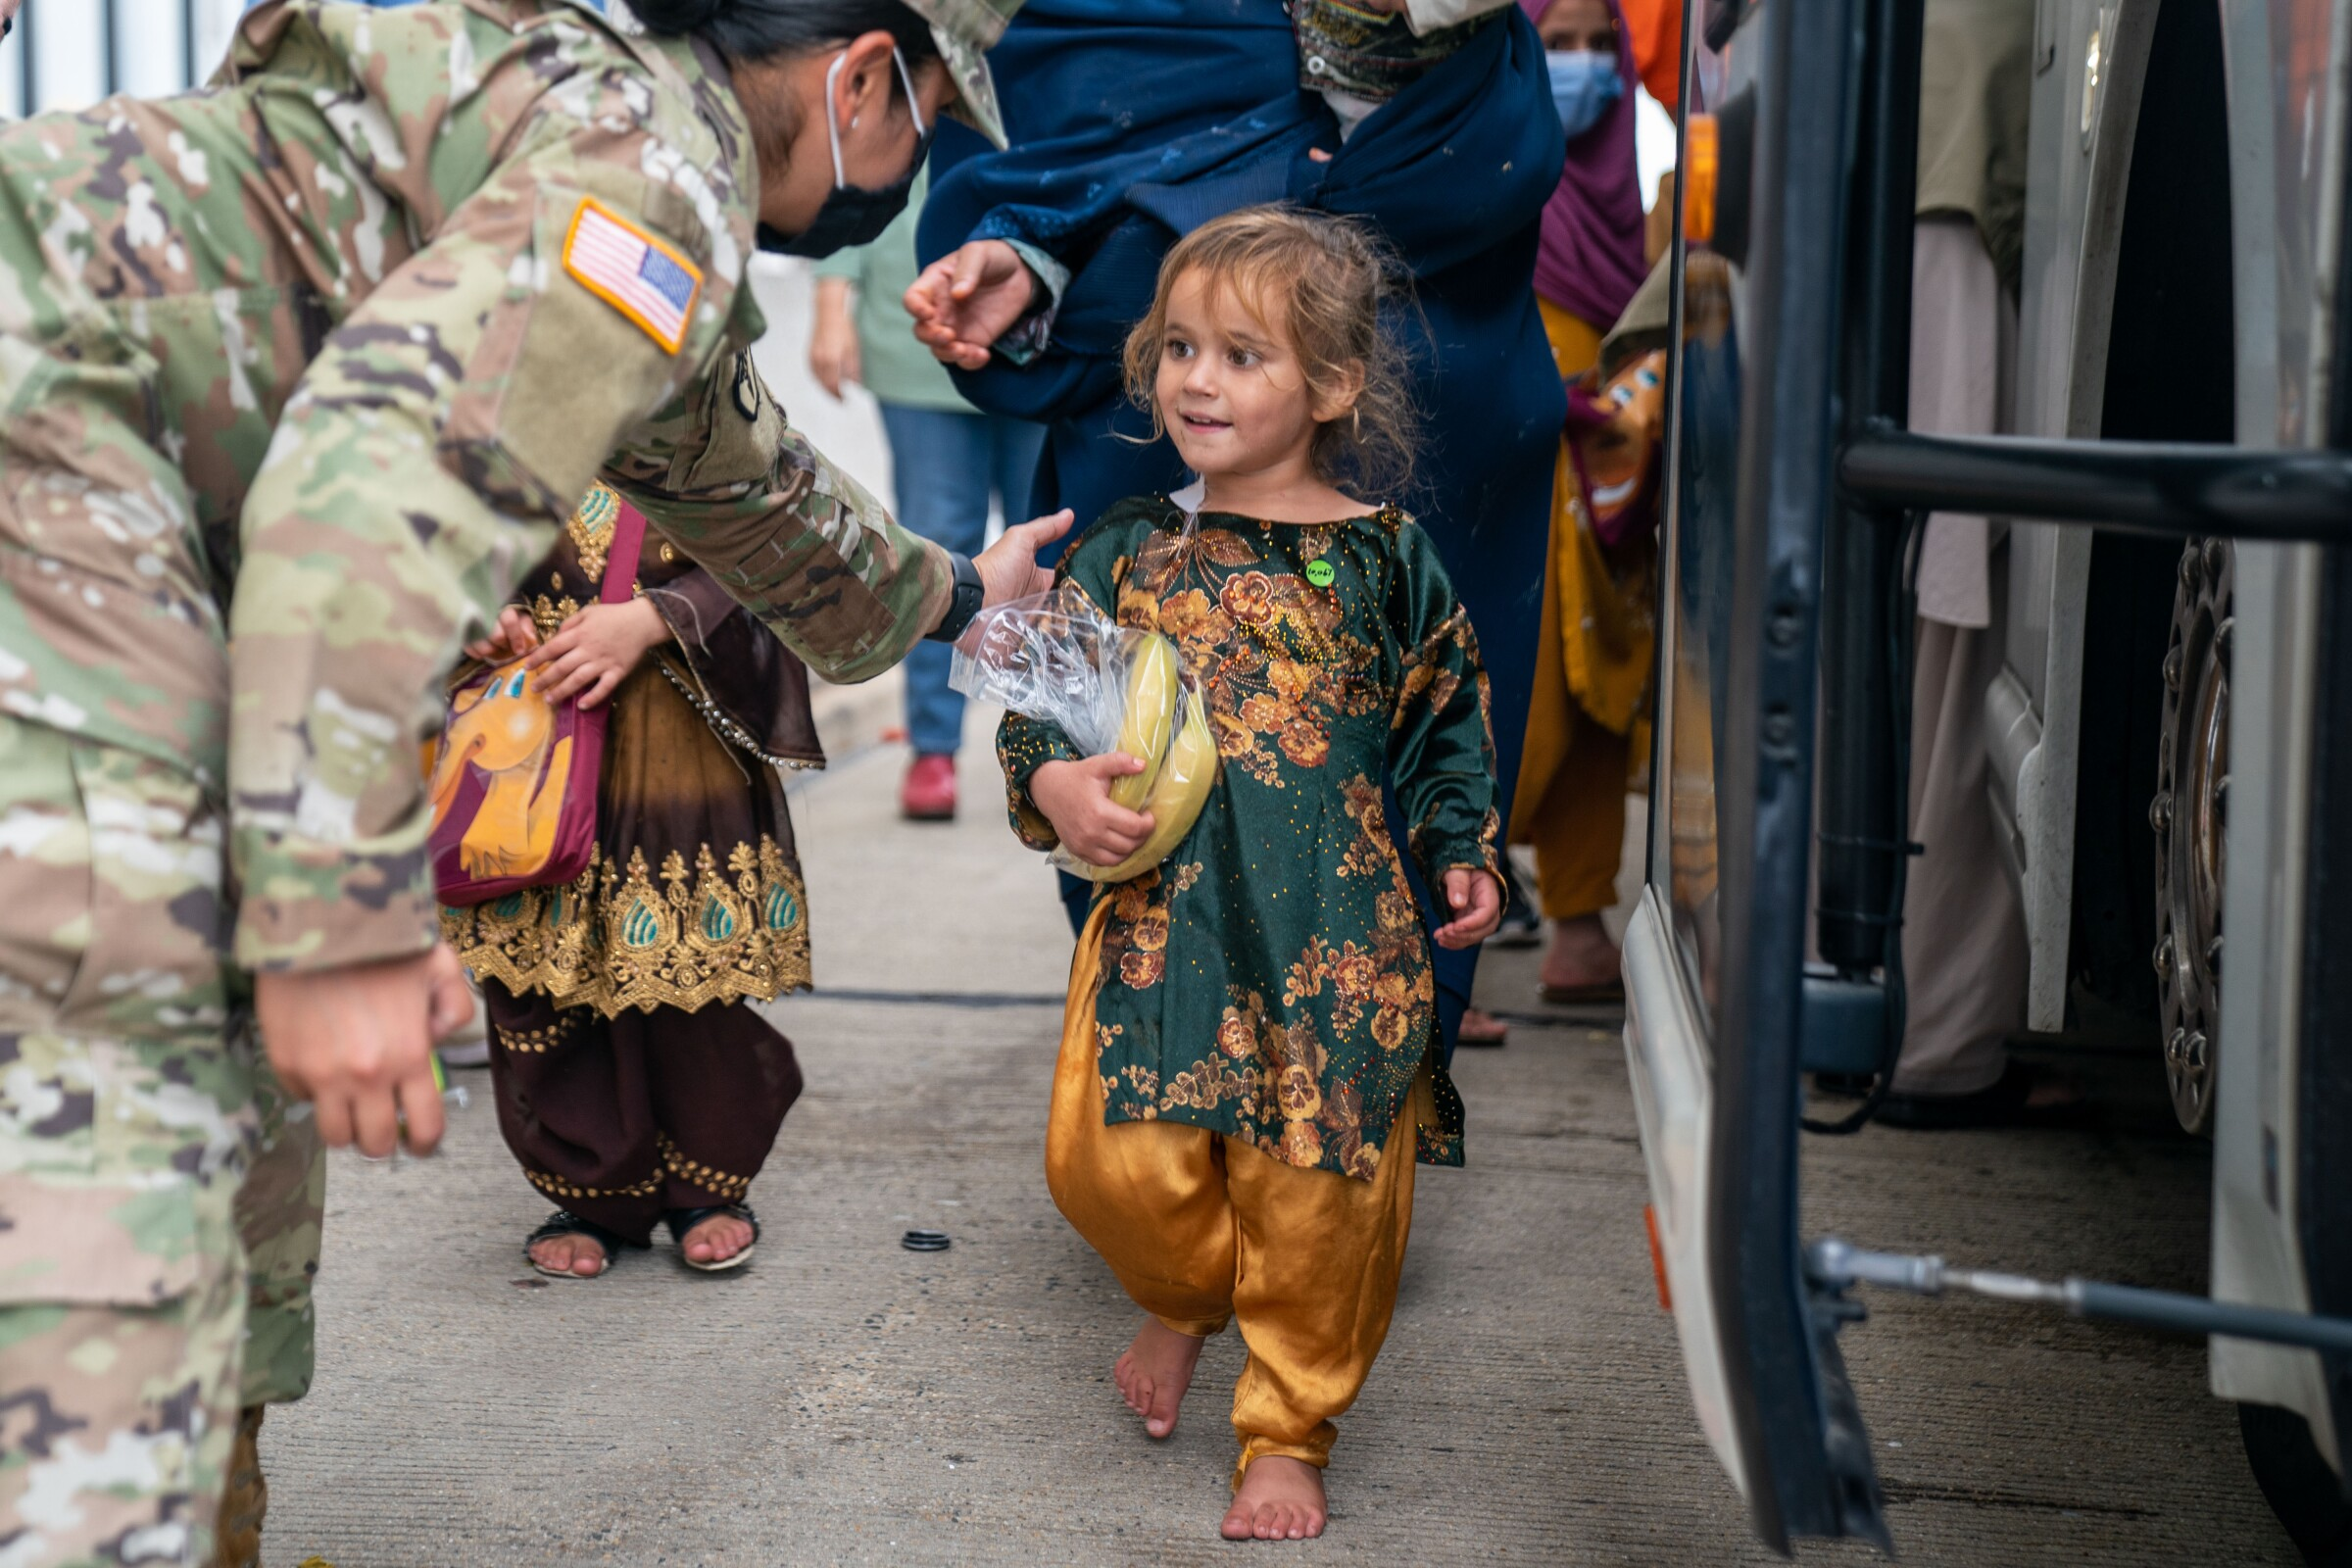 A U.S. service member greets a smiling child in a colorful outfit